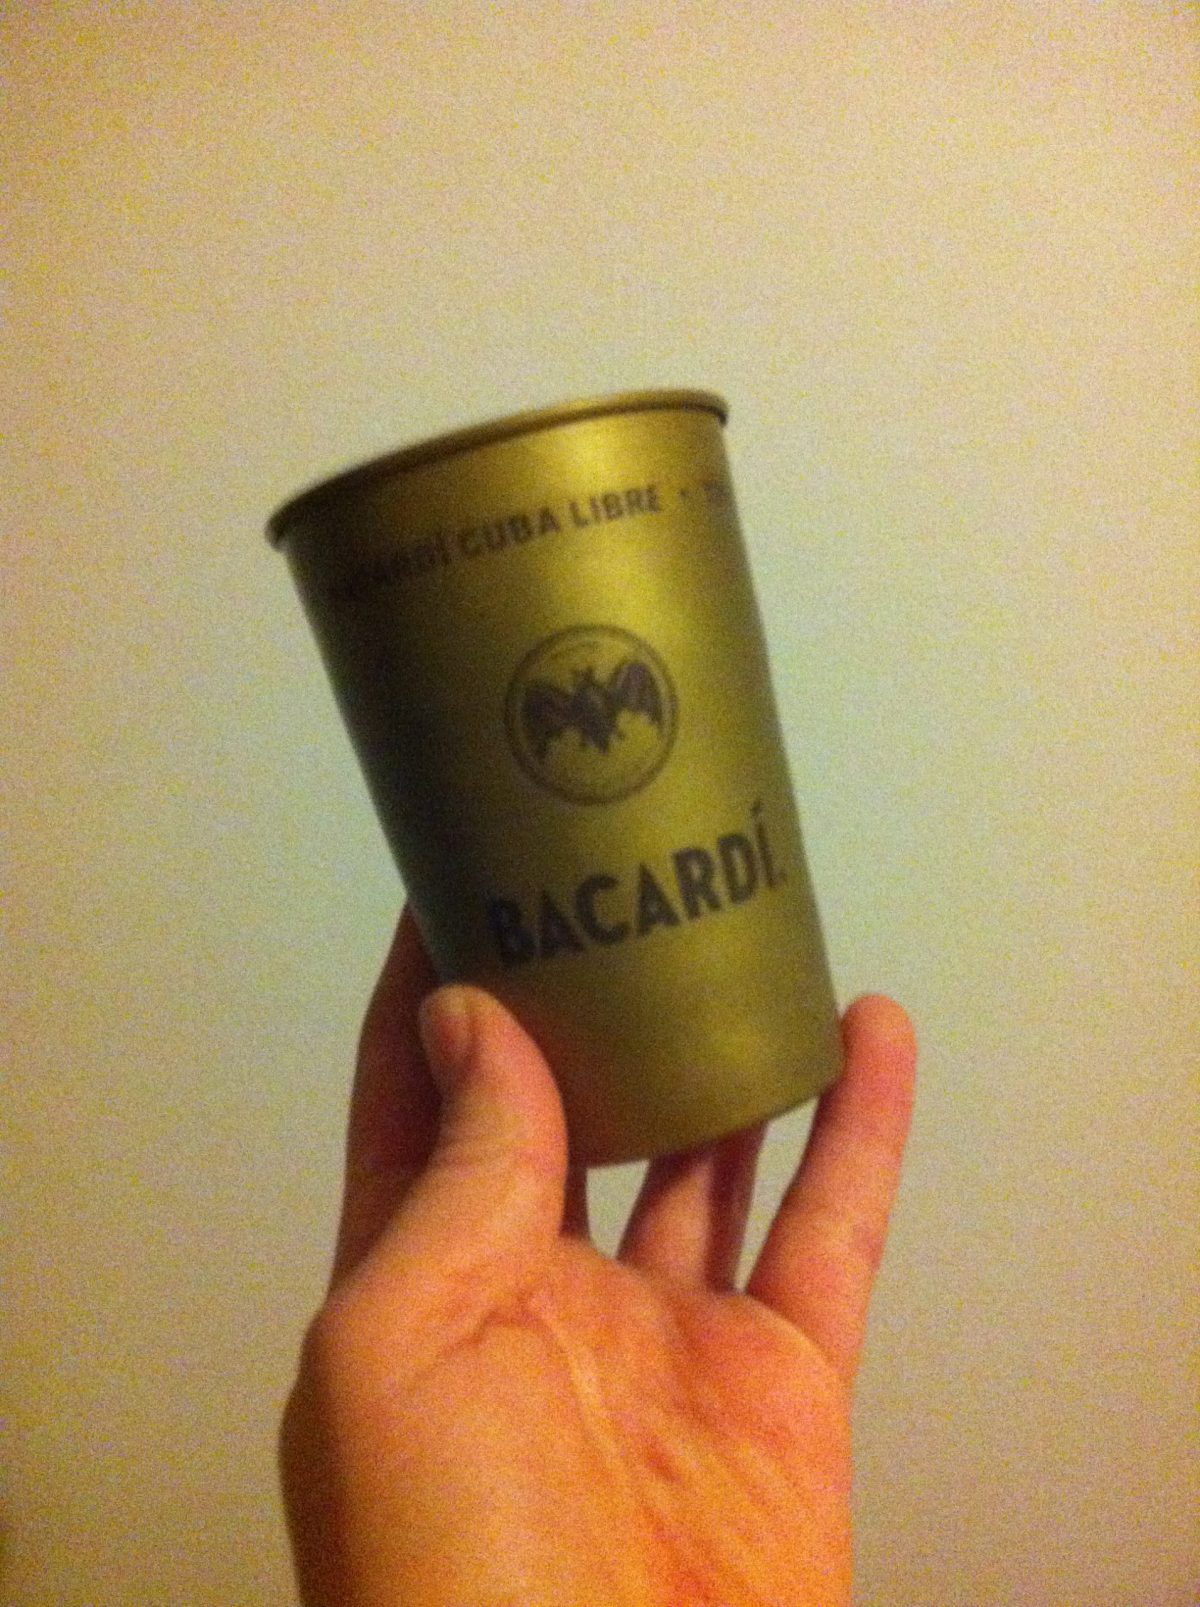 How to avoid disposable (plastic) cups